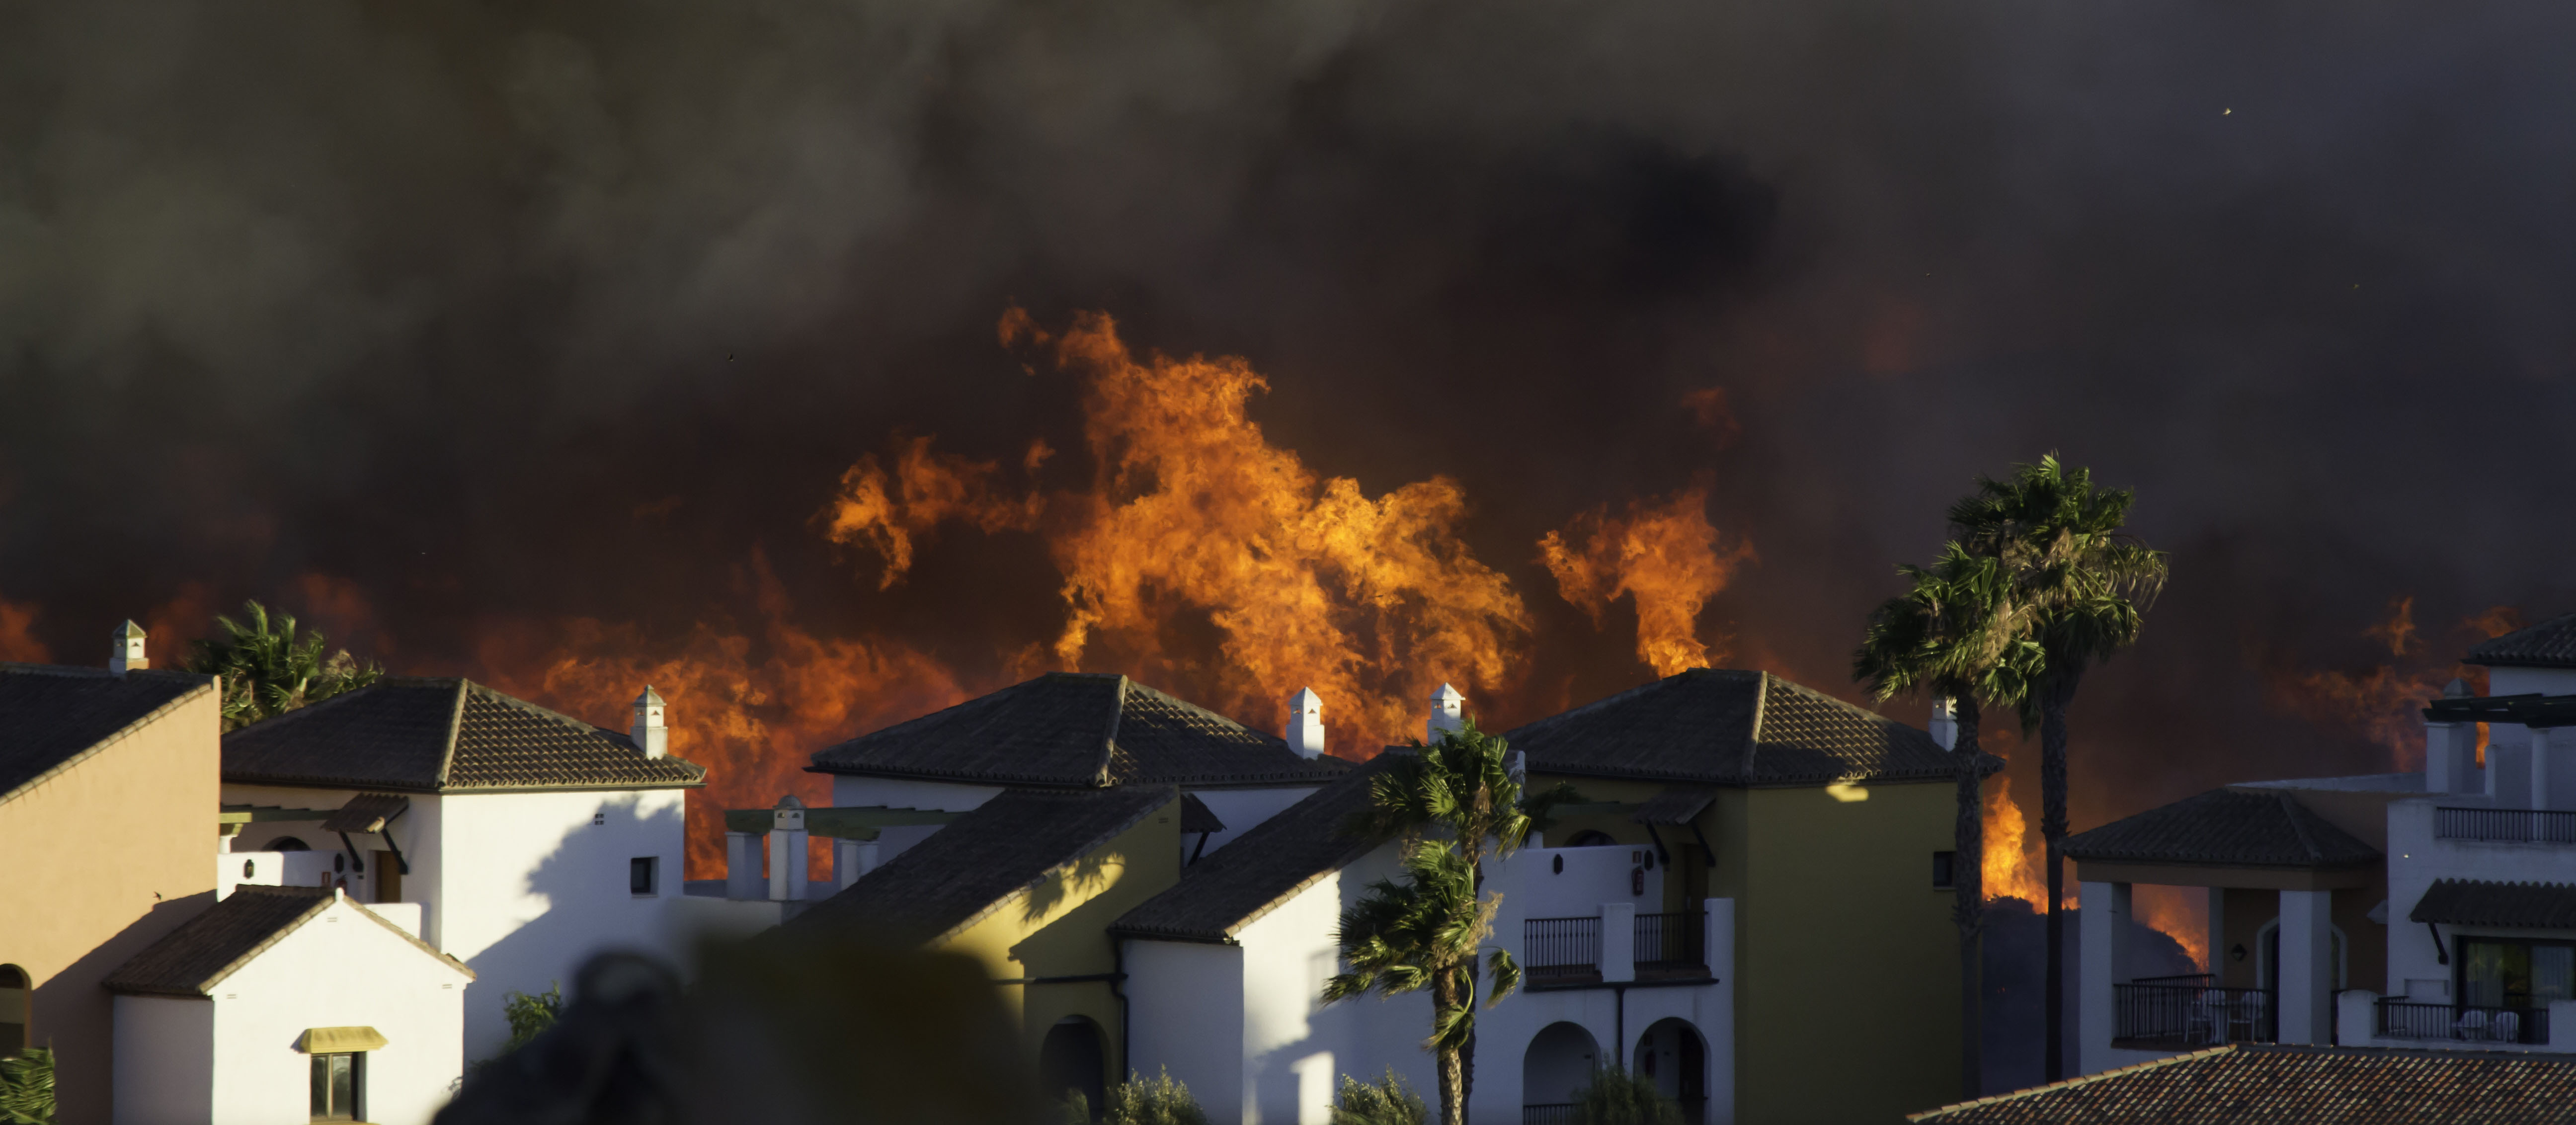 10 Cities in California That Might Experience Wildfire This Season